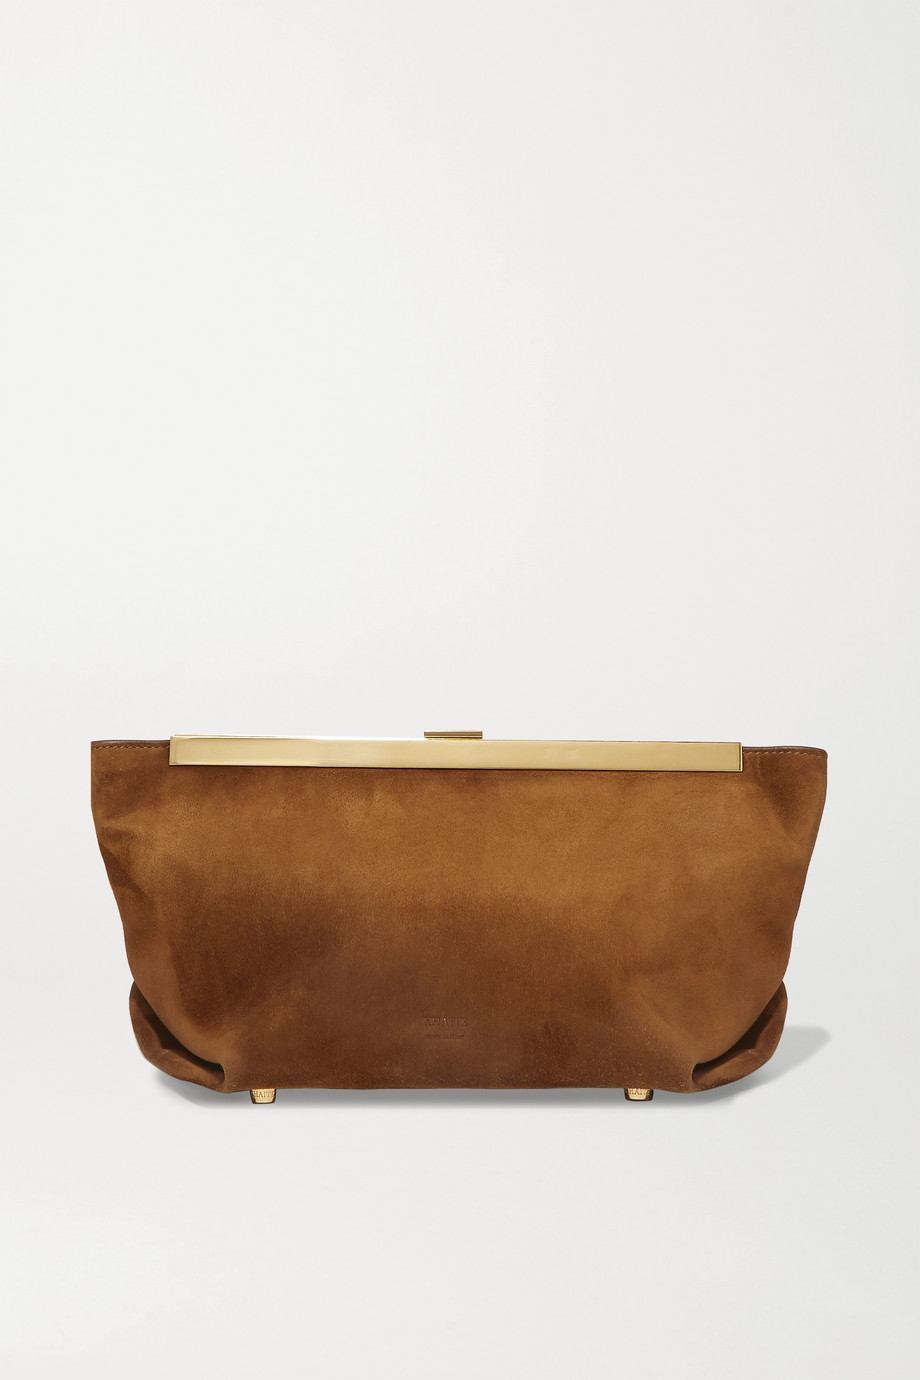 Khaite Envelope Pleat suede clutch